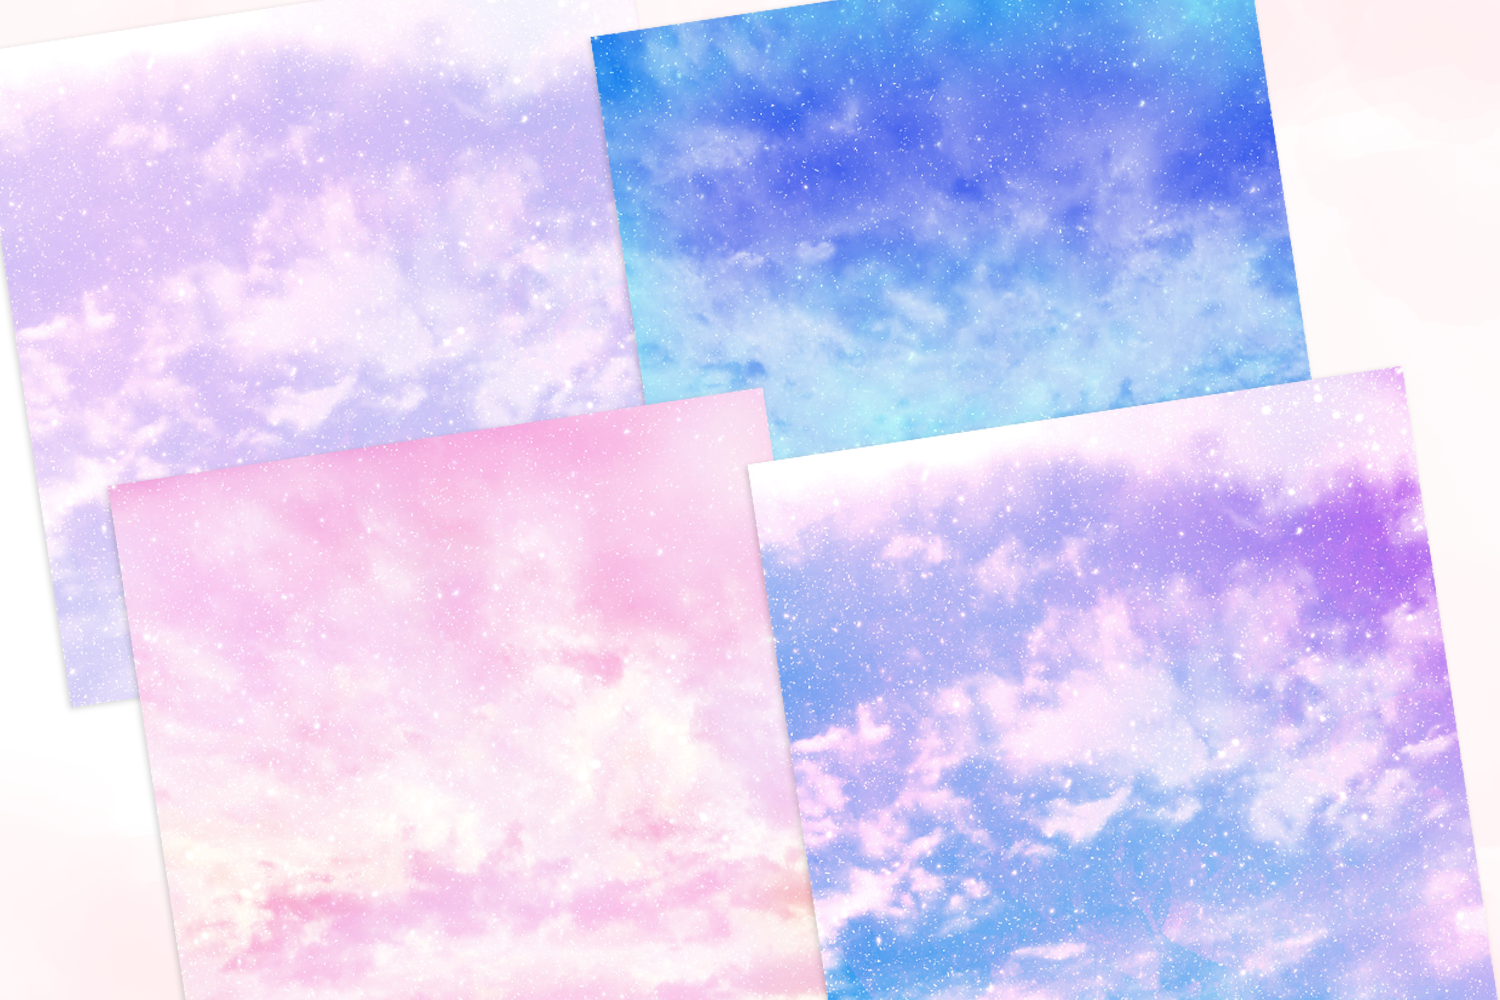 Sparkling Sky Texture example image 2